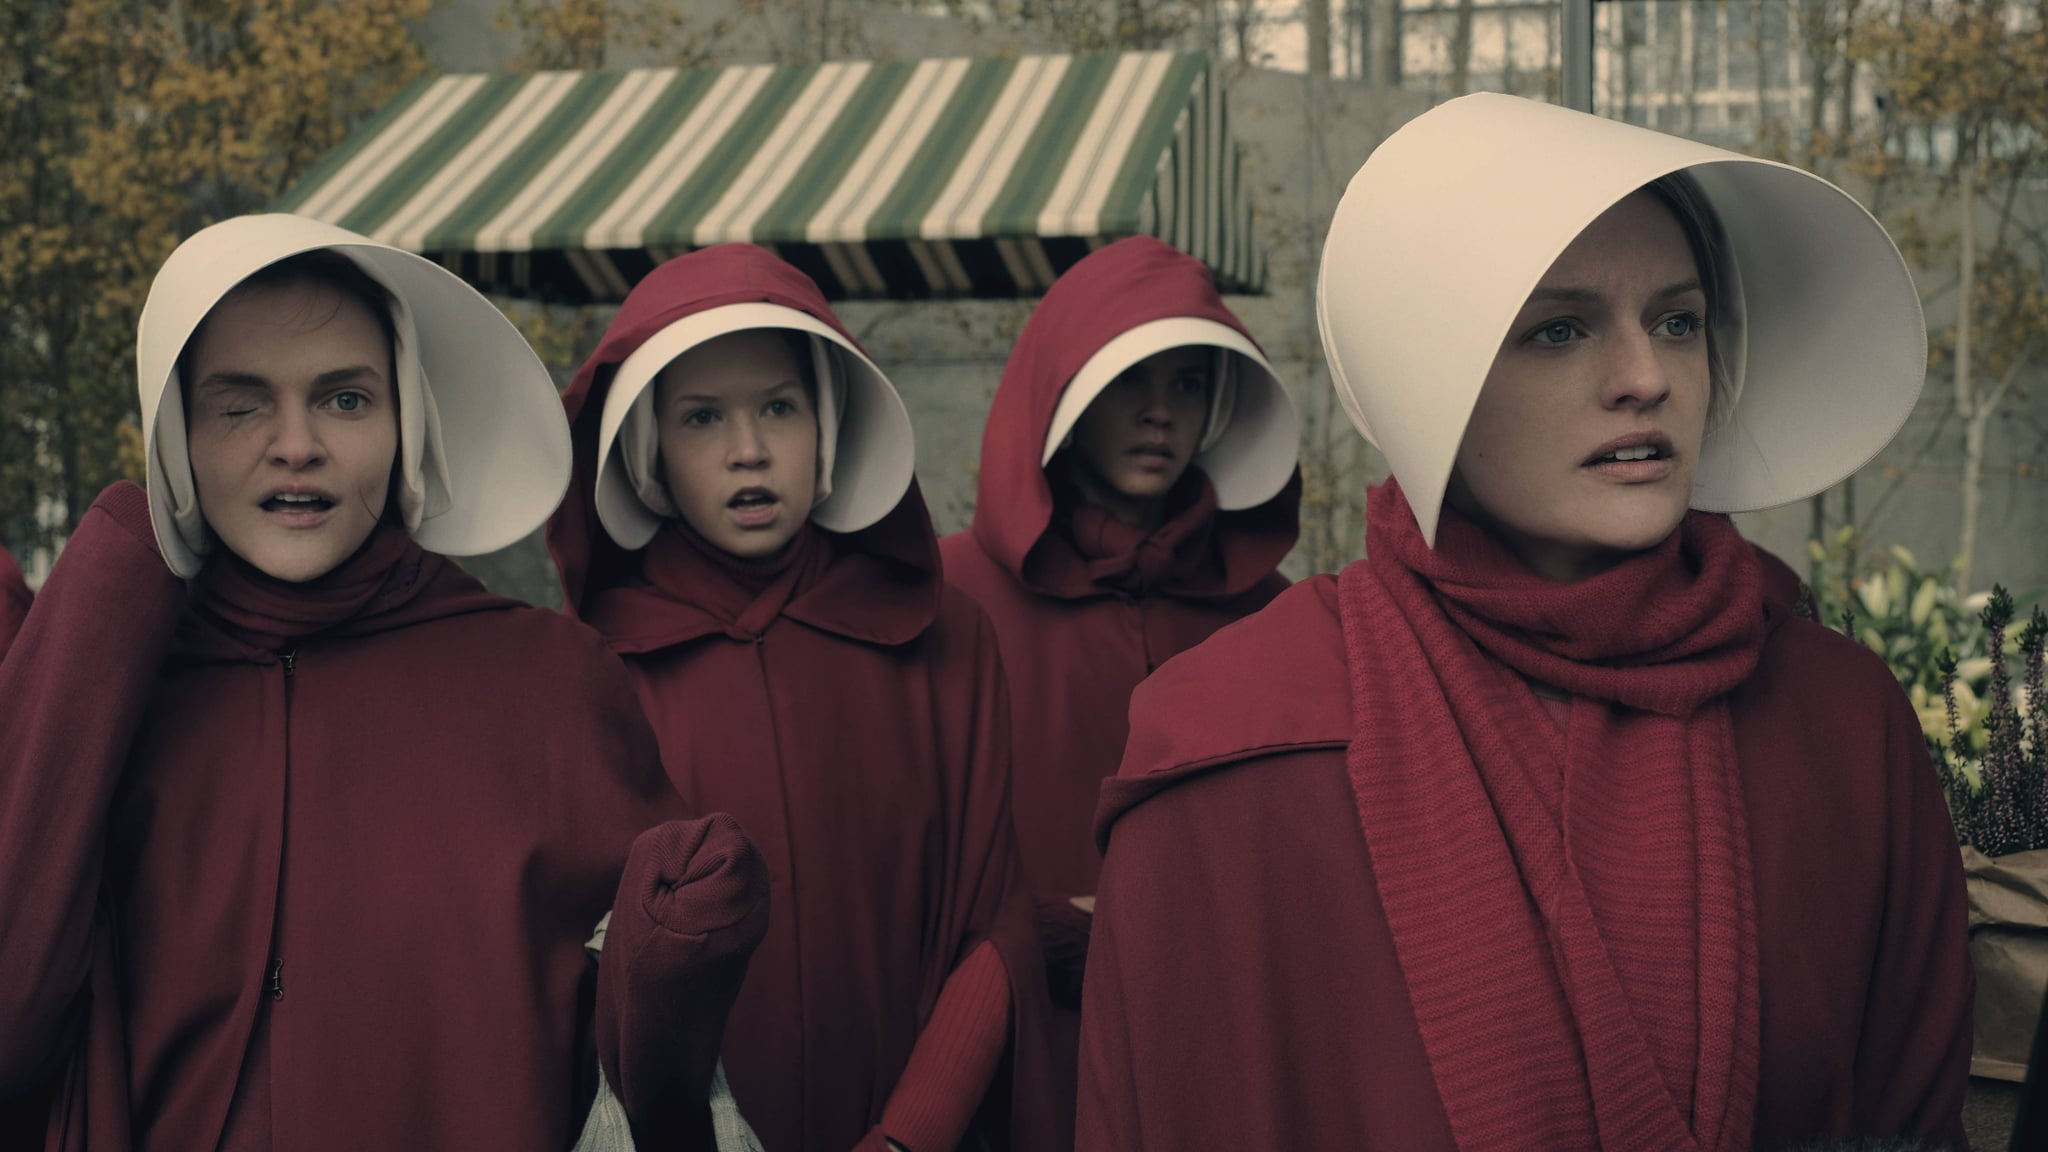 The Handmaid's Tale season 4: will June survive the